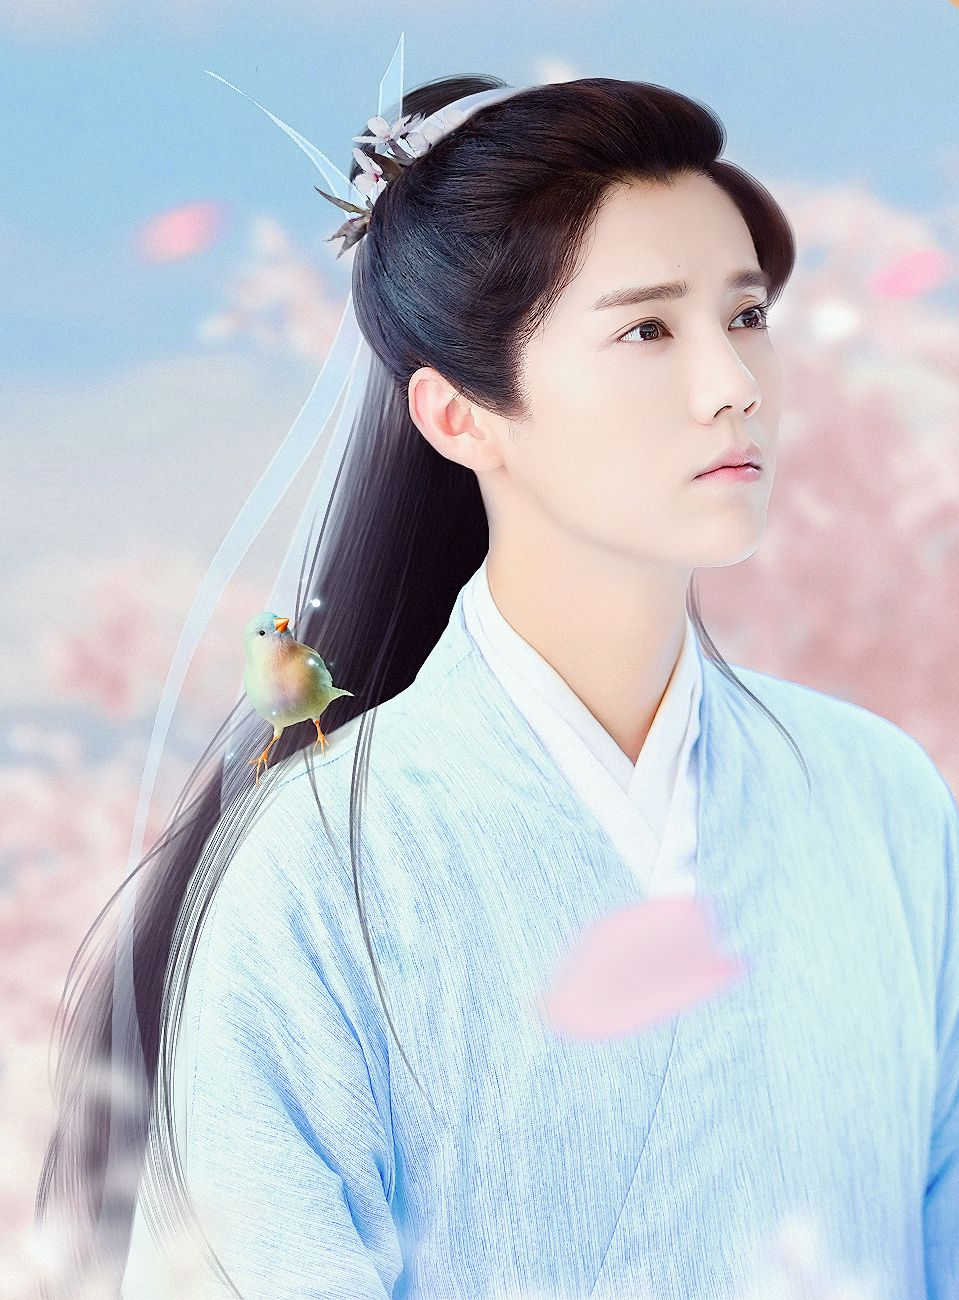 LuHan 鹿晗|| 160917 1st Trailer of Fighter of the Destiny ...